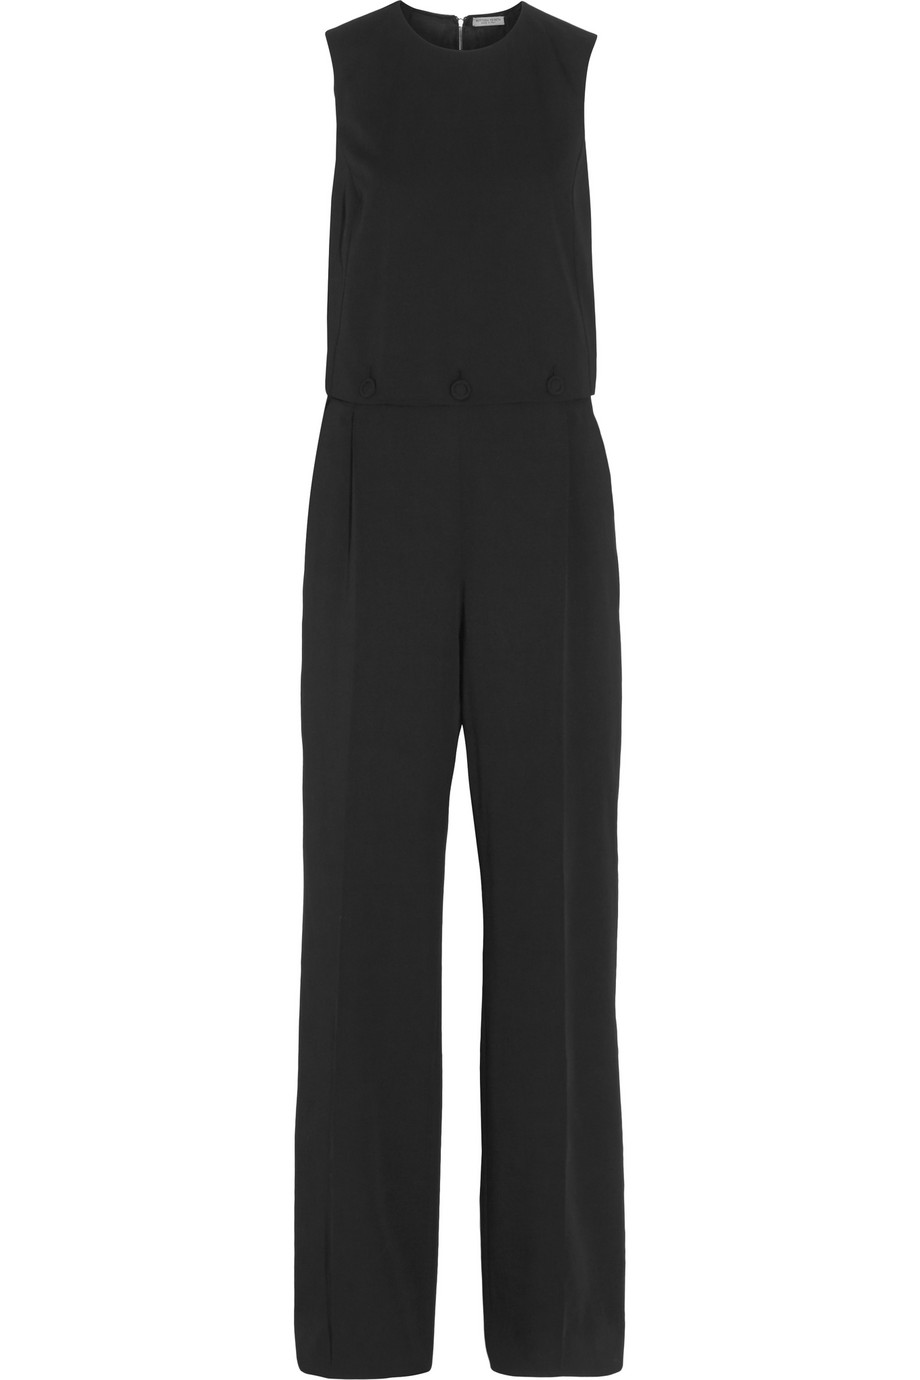 Bottega Veneta Button-Detailed Wool-Gabardine Jumpsuit, Black, Women's, Size: 48